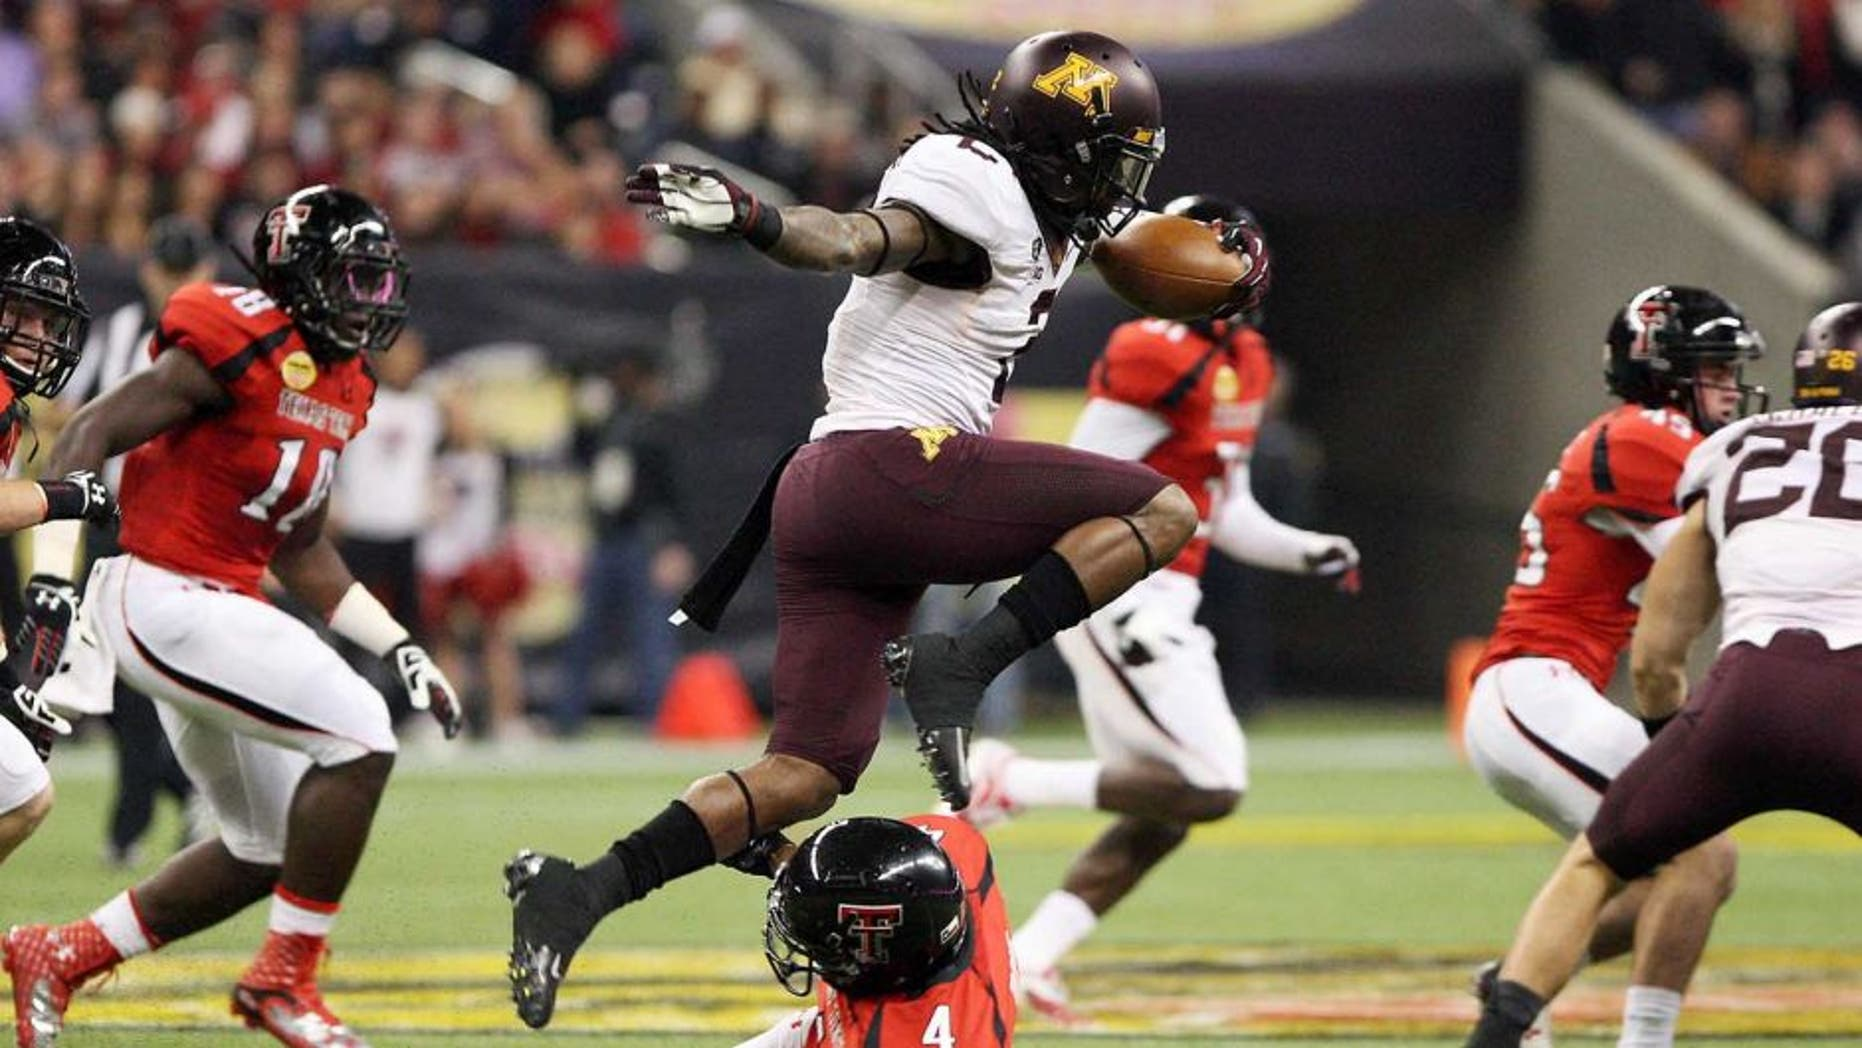 Dec 28, 2012; Houston, TX, USA; Minnesota Golden Gophers defensive back Troy Stoudermire (2) leaps over a defender on a kickoff return against the Texas Tech Red Raiders during the first quarter of the Car Care Bowl at Reliant Stadium. Mandatory Credit: Troy Taormina-USA TODAY Sports